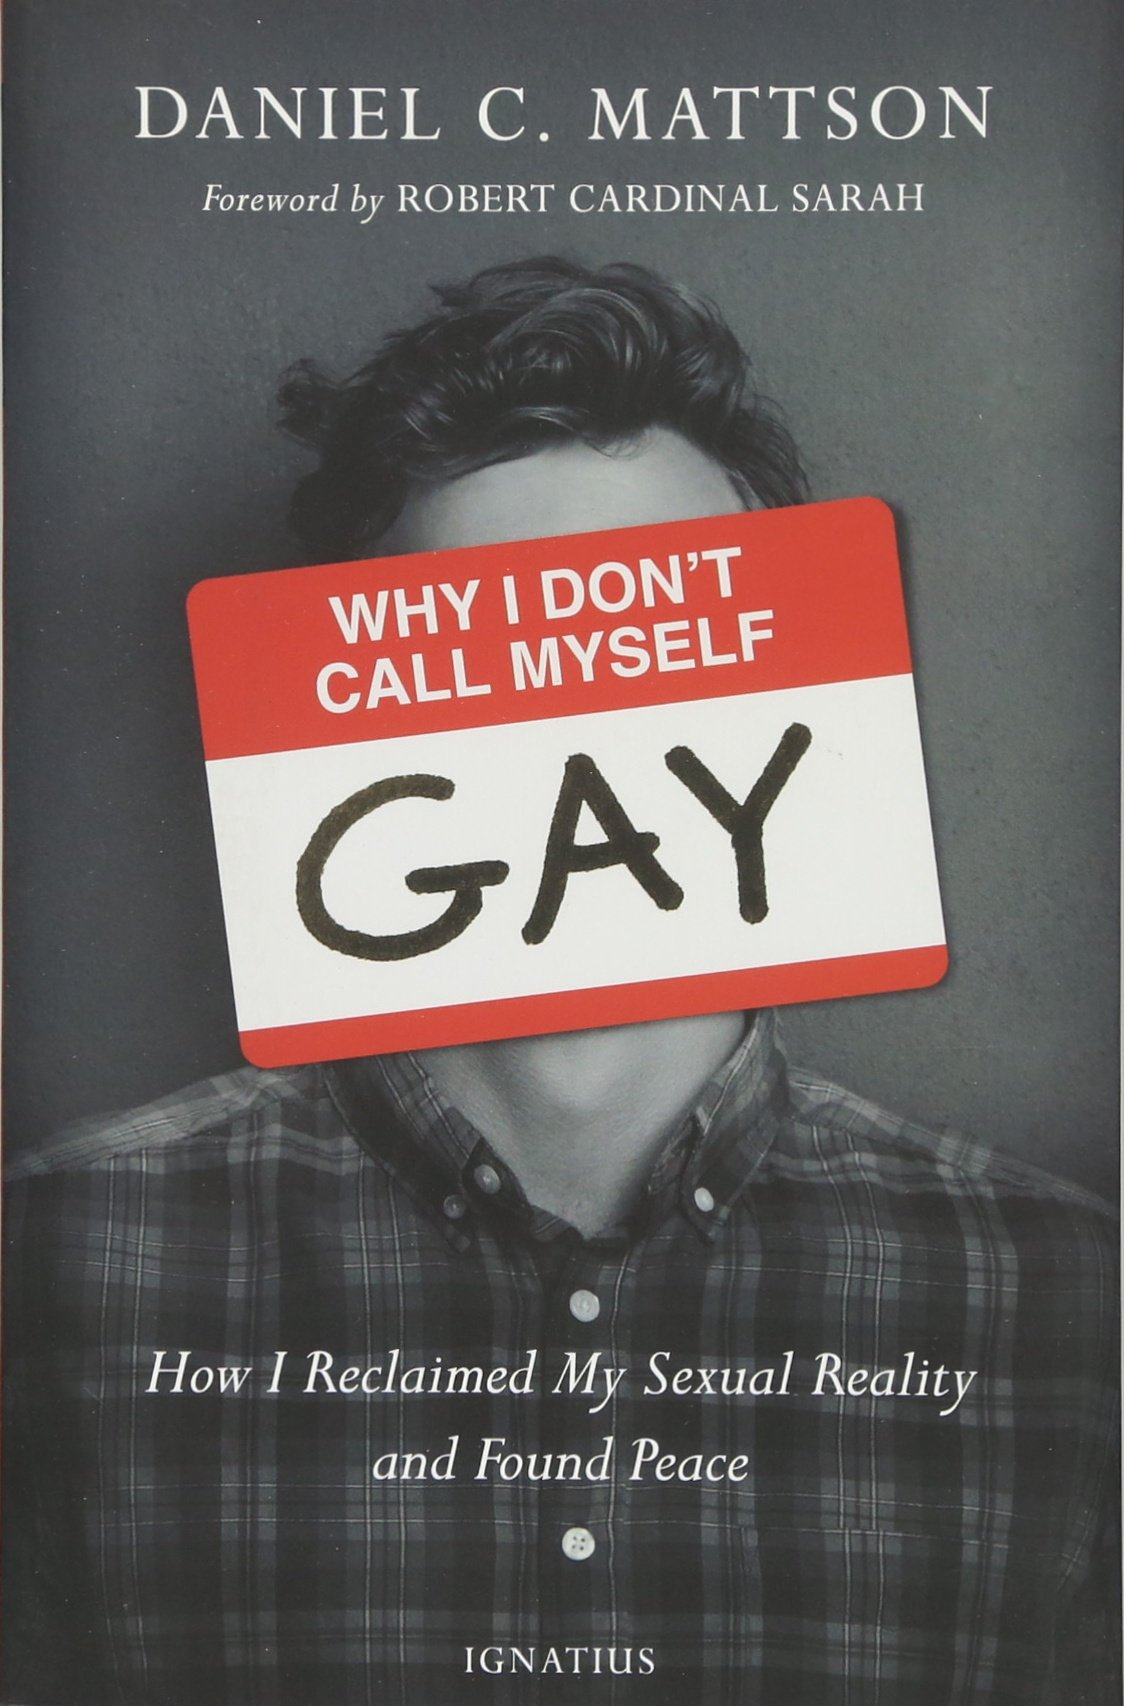 Why I Dont Call Myself Gay: How I Reclaimed My Sexual Reality and Found Peace: Amazon.es: Daniel Mattson: Libros en idiomas extranjeros